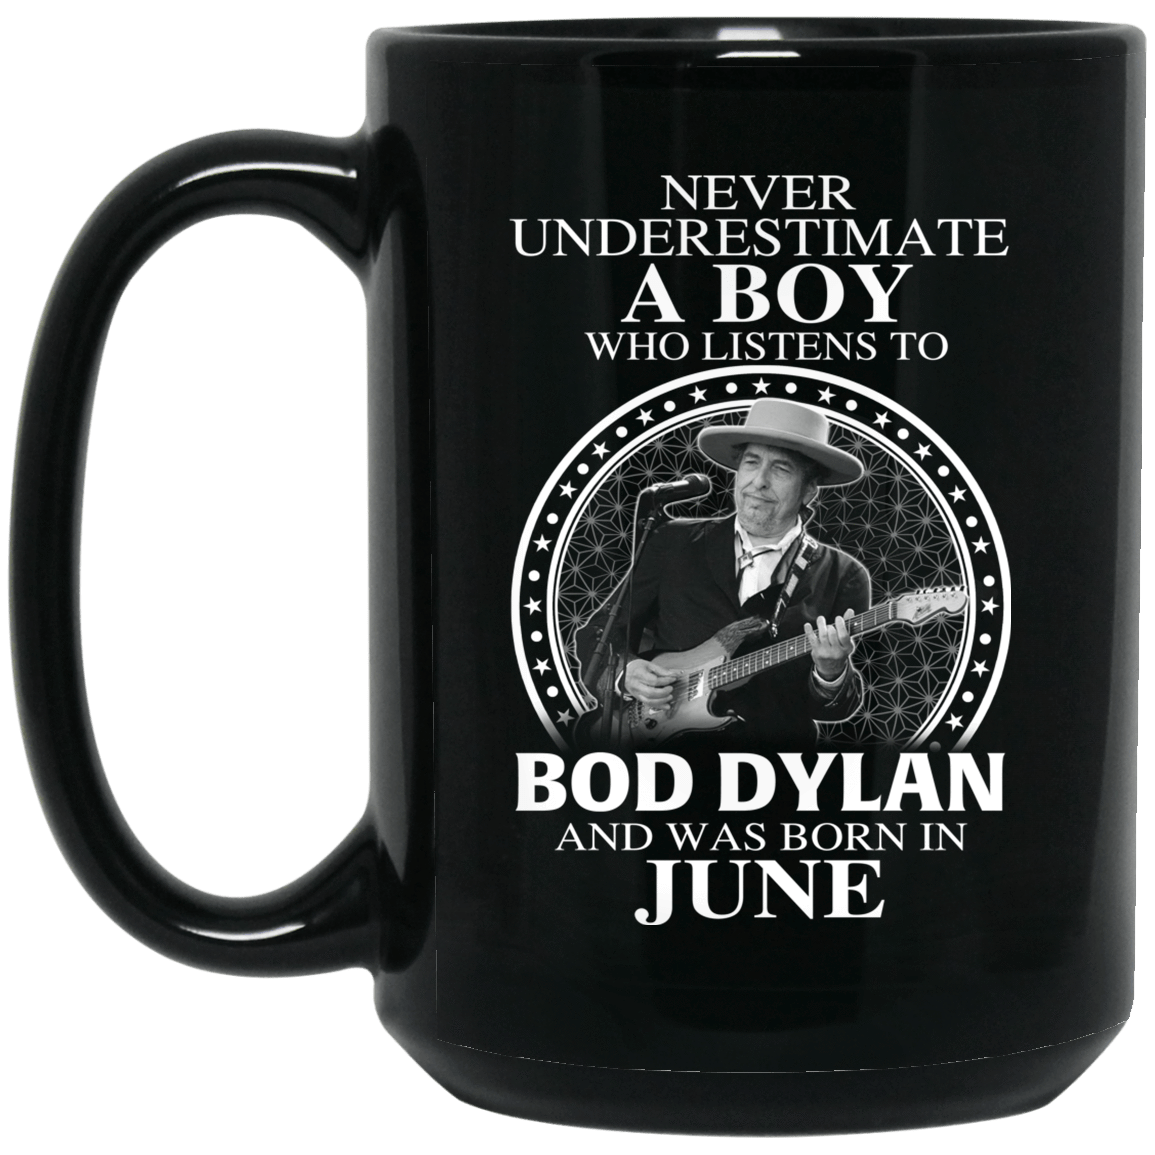 A Boy Who Listens To Bob Dylan And Was Born In June Mug 1066-10182-76154921-49311 - Tee Ript